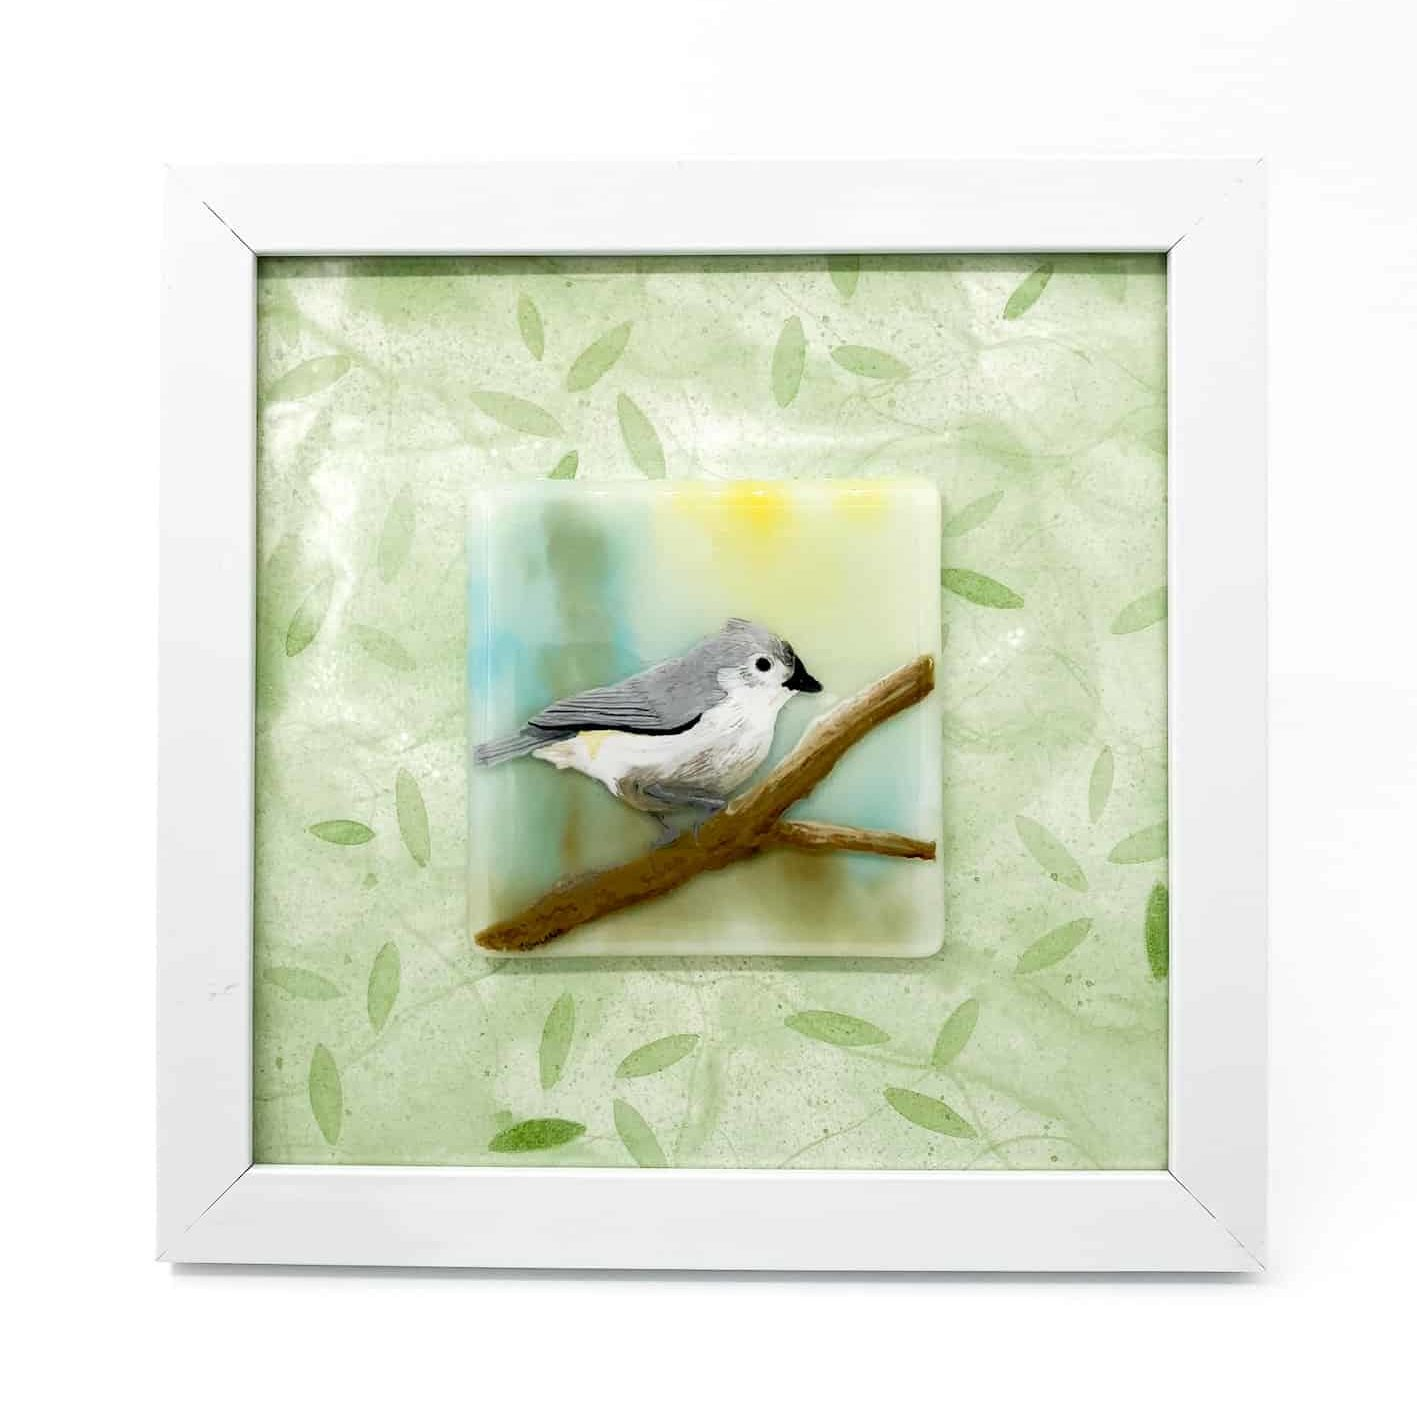 "A grey and white tufted titmouse bird perched on a branch whith a pale yellow, green and blue background. The bird is an enamel painting on a glass tile that is 4x4"". It is framed in a 8x8 frame with a pale green leaf patterned mat."